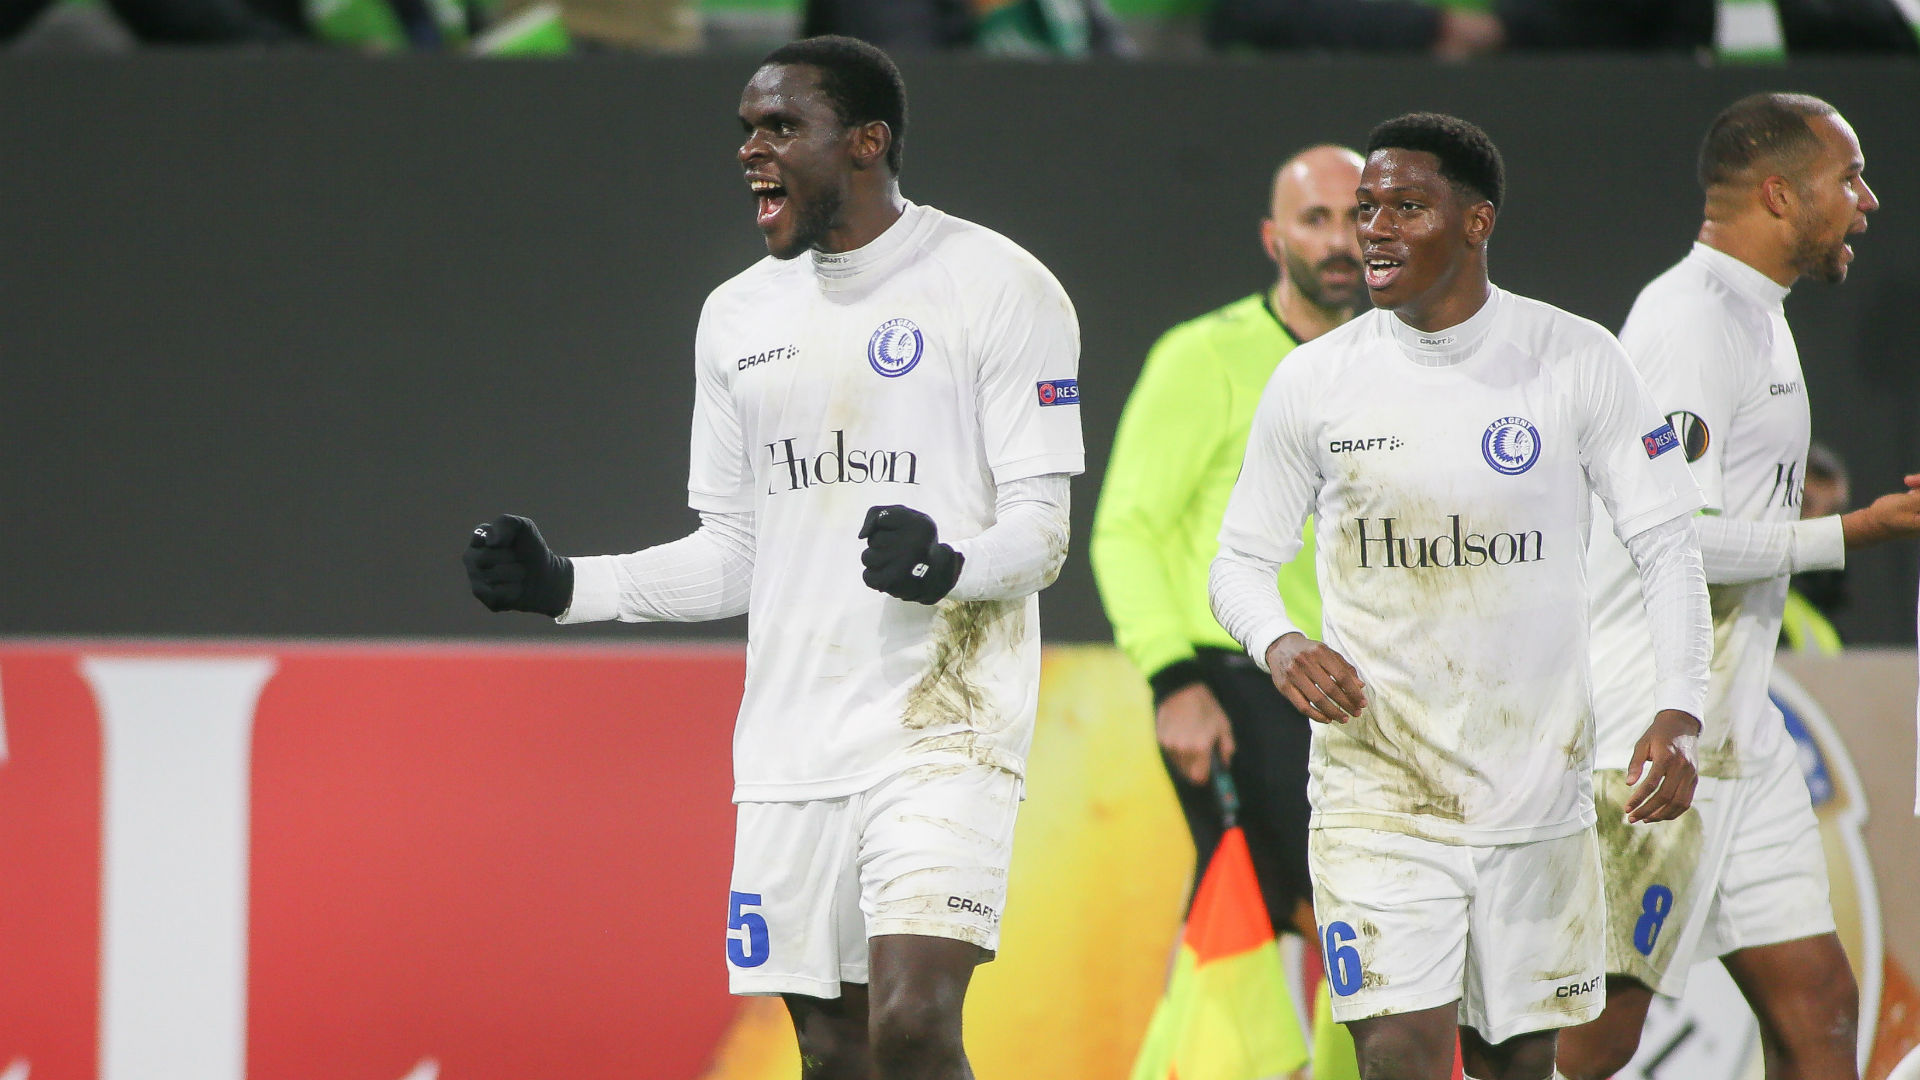 Ngadeu-Ngadjui scores first Europa League goal for Gent against Wolfsburg